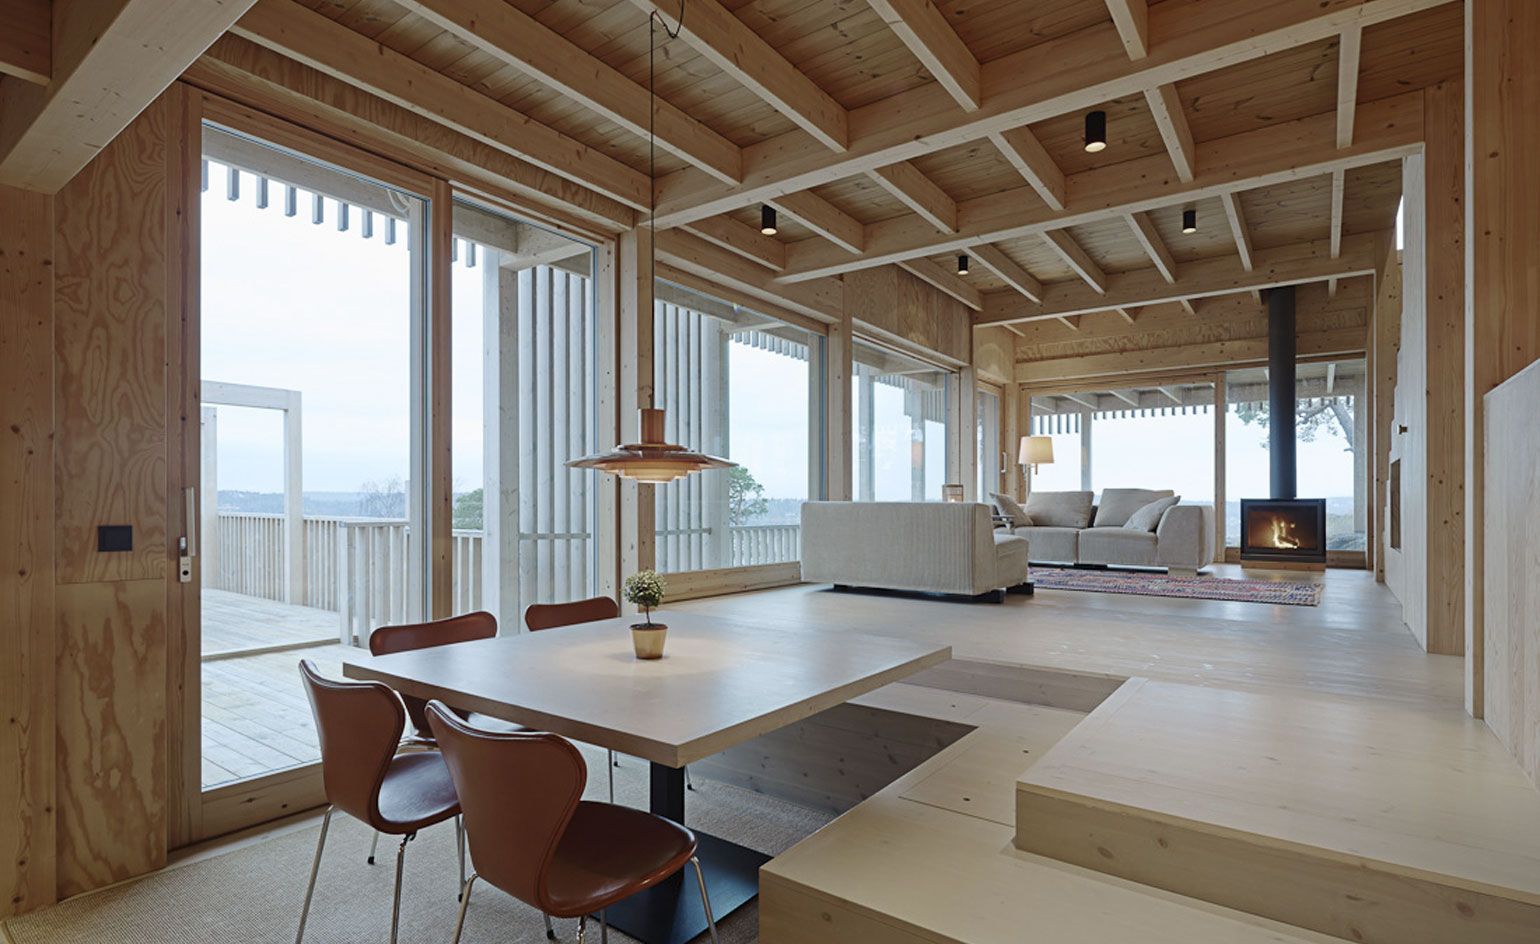 Holzdecke Bauhaus Villa Moelven Is A Surprising Swedish Home Inspired By The